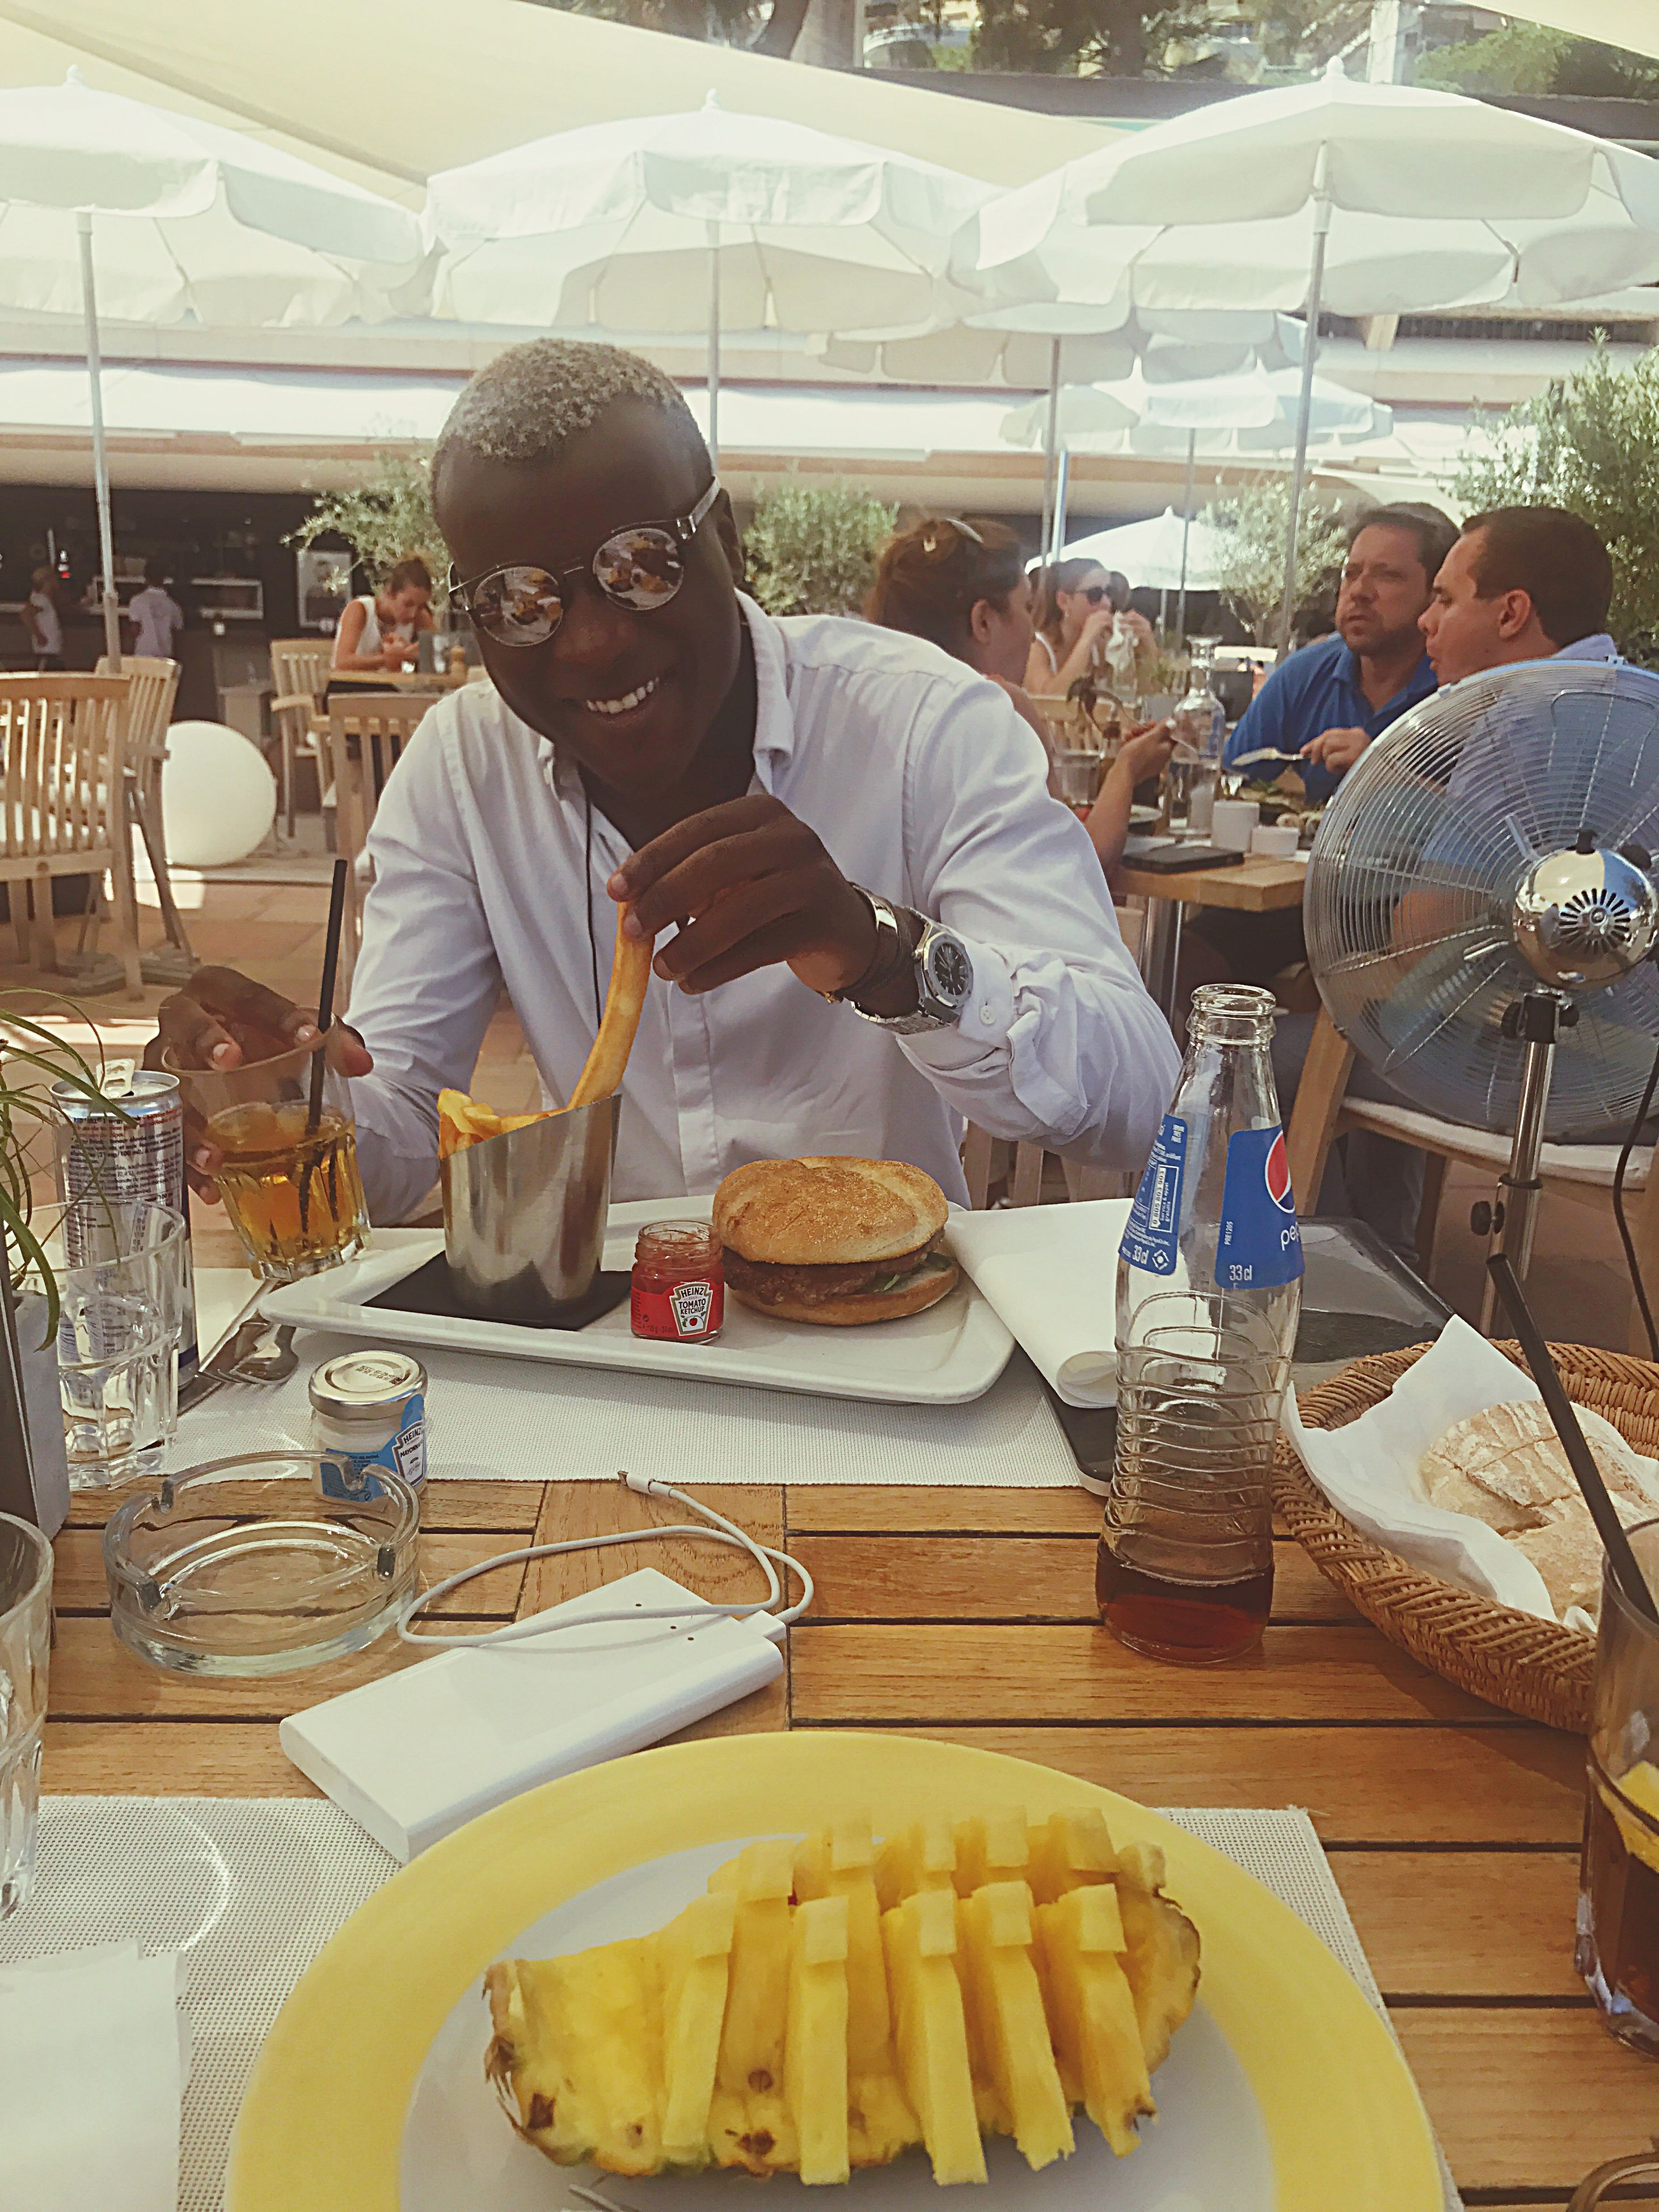 food and drink, real people, restaurant, table, food, plate, cafe, men, drink, lifestyles, indoors, one person, freshness, day, people